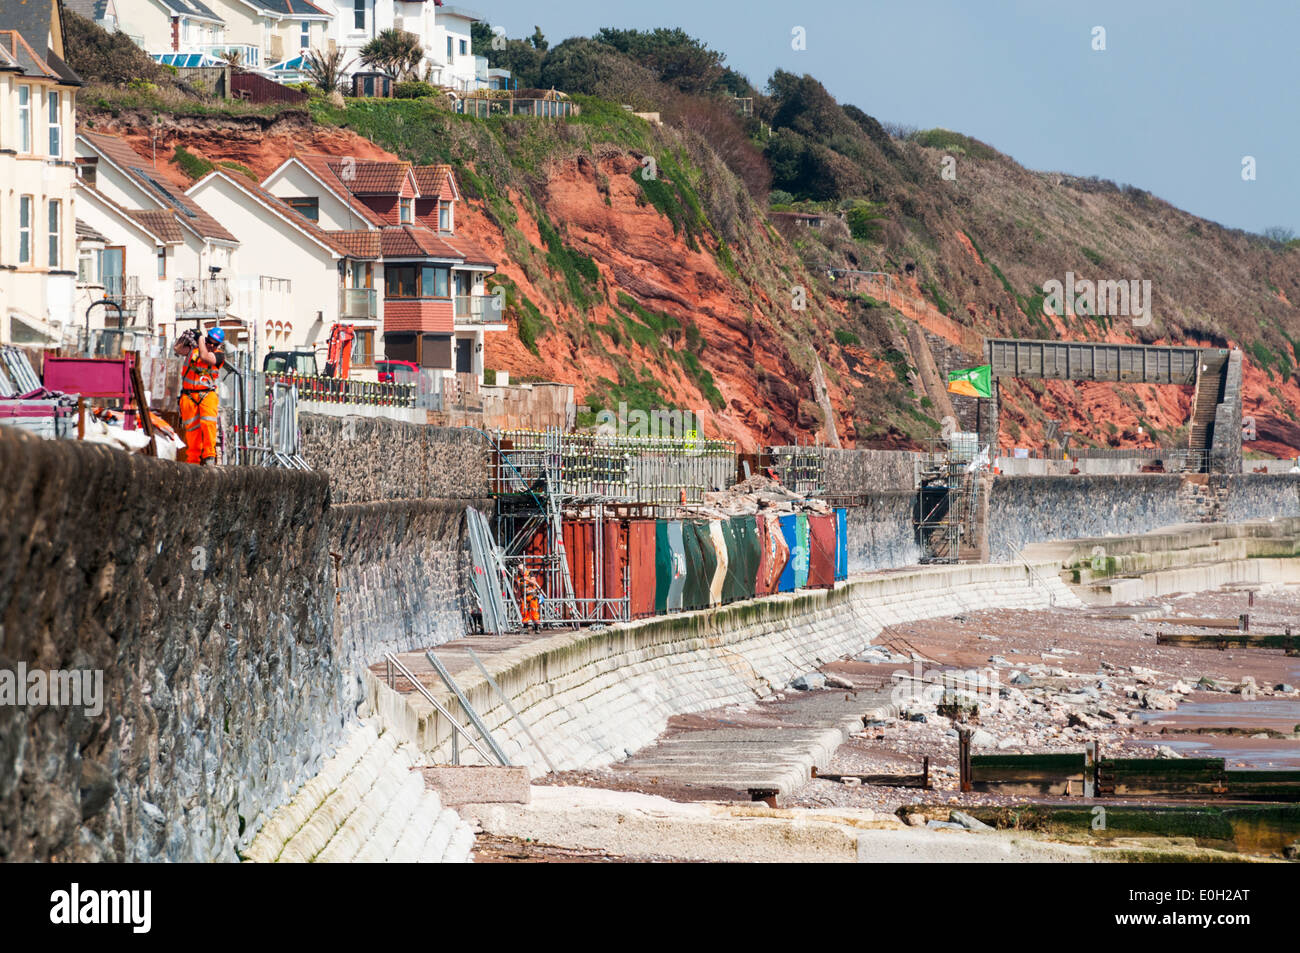 The ongoing construction site at Dawlish repairing the damage caused to the seawall by the winter storms - Stock Image